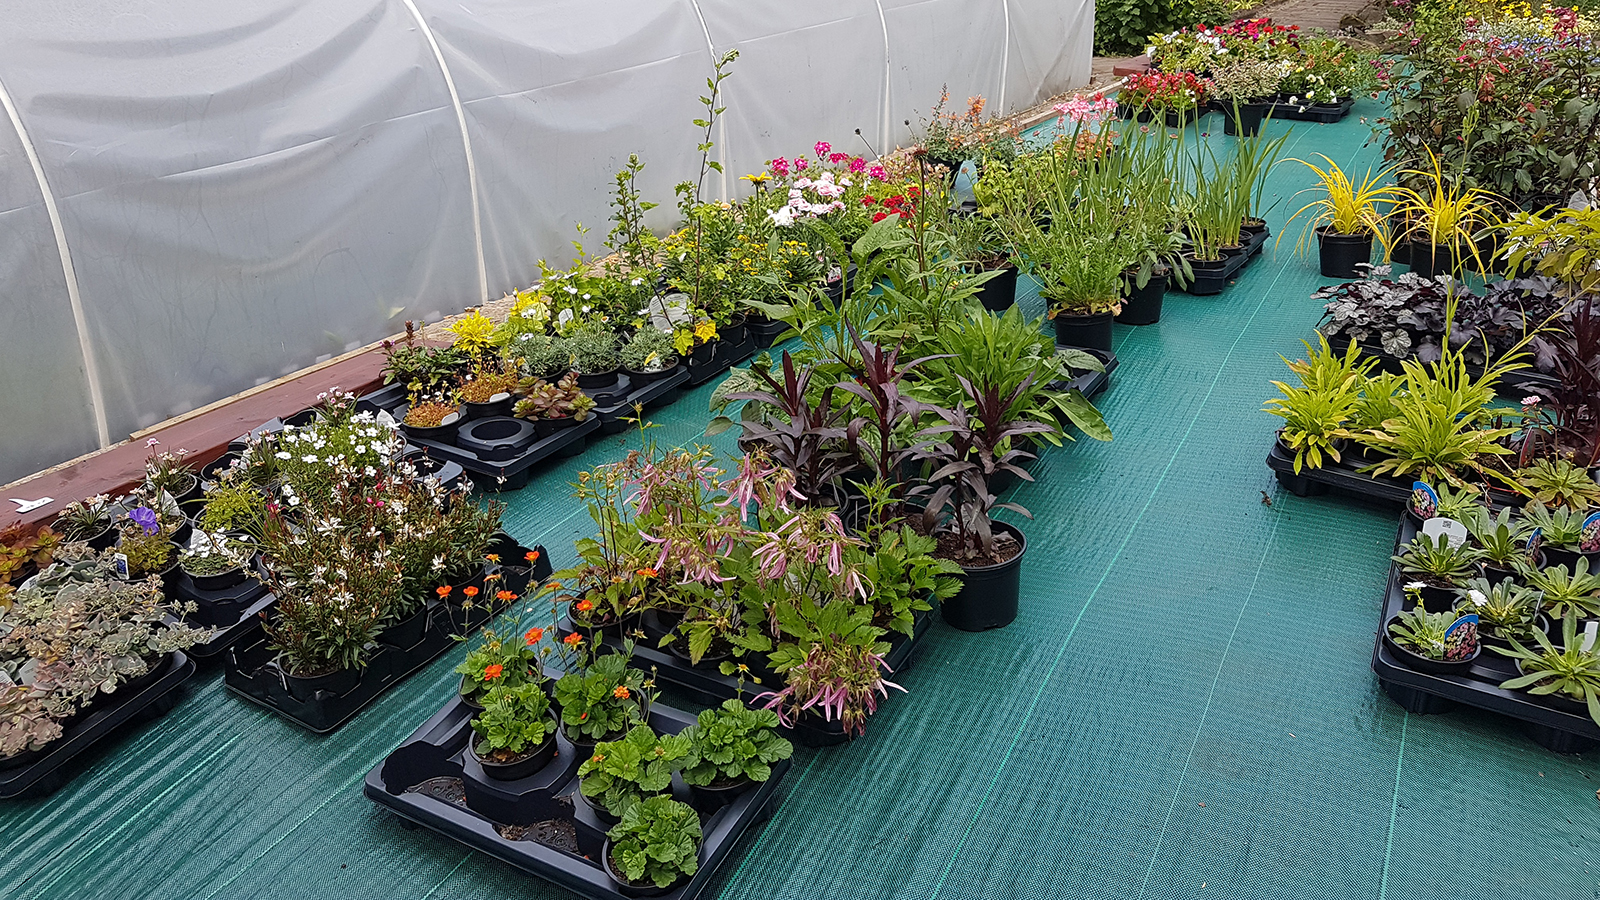 whickham-plants-for-sale